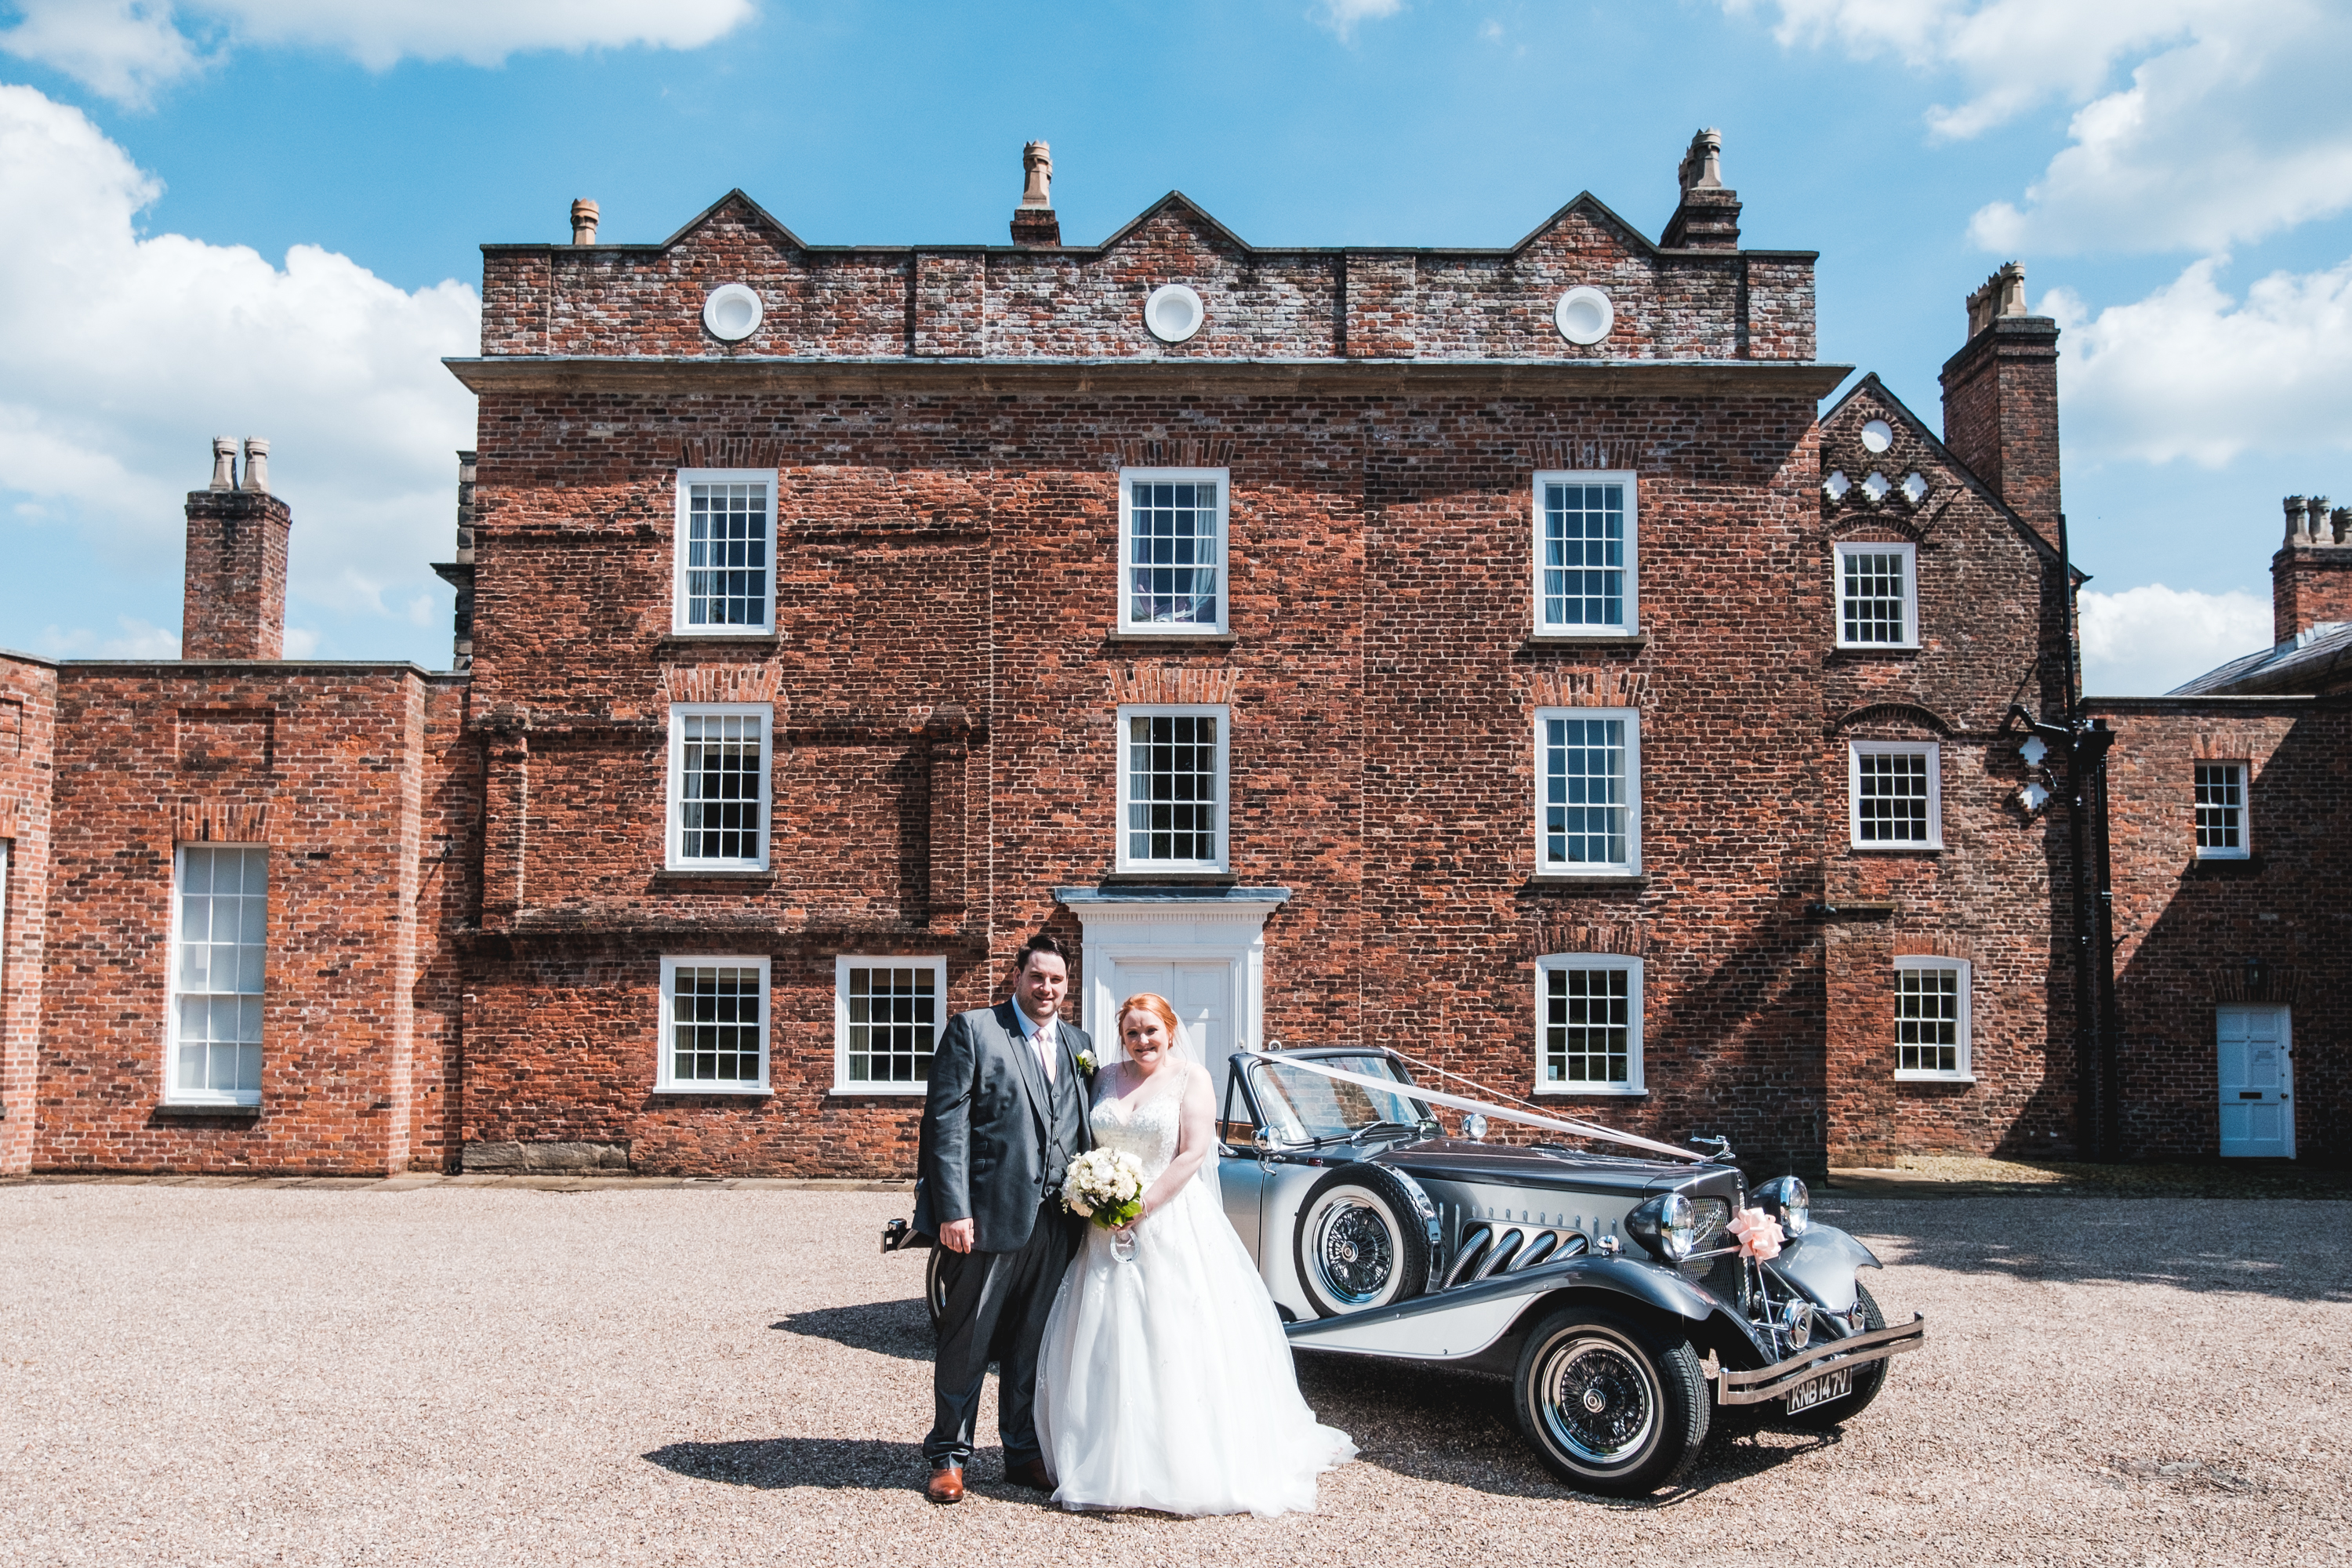 Mike & Beth's Wedding Film at Meols Hall, Southport